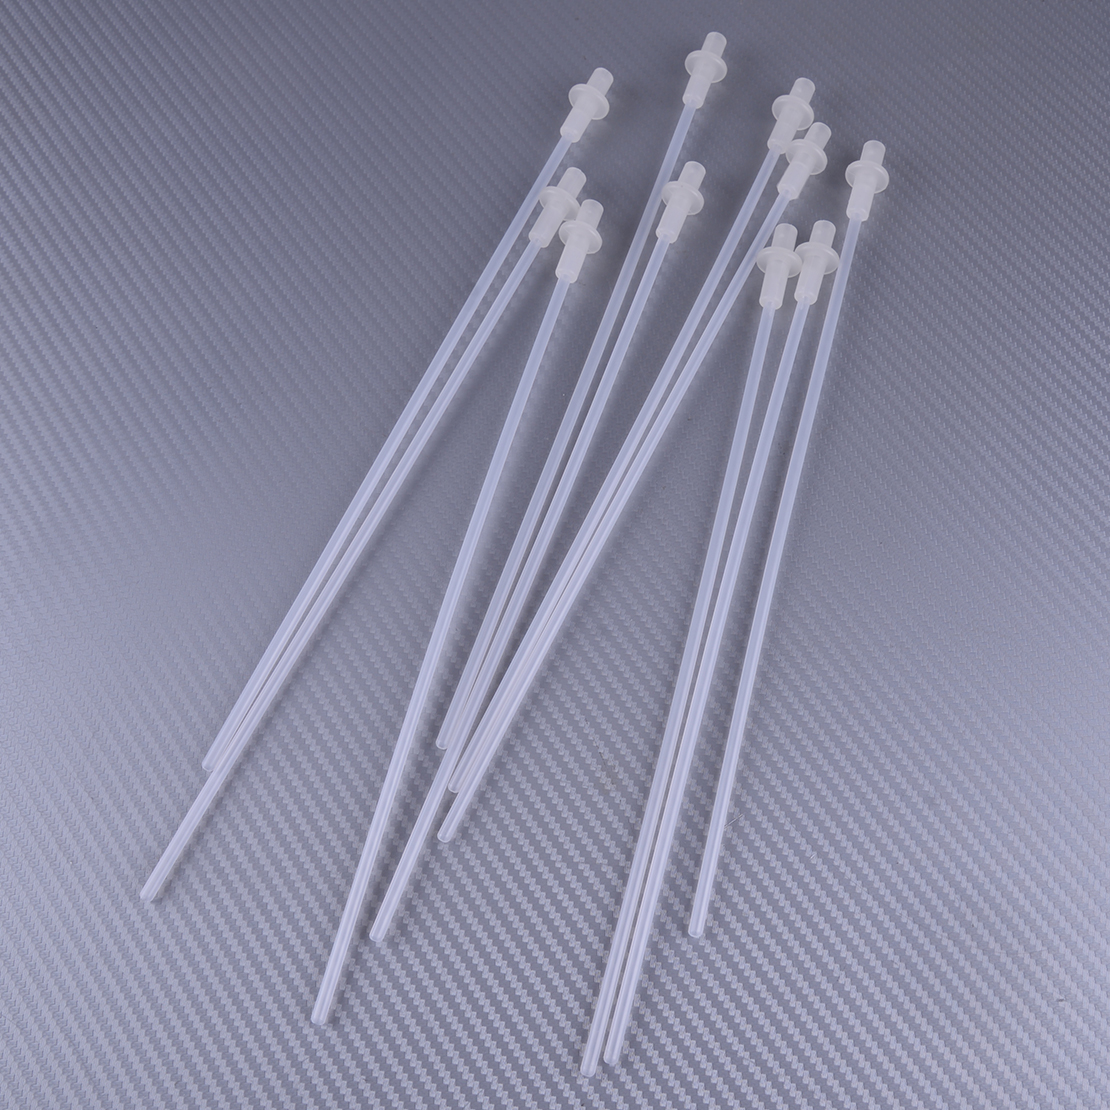 LETAOSK 10pcs Canine Dog Goat Sheep Artificial Insemination Breed Whelp Catheter Rod